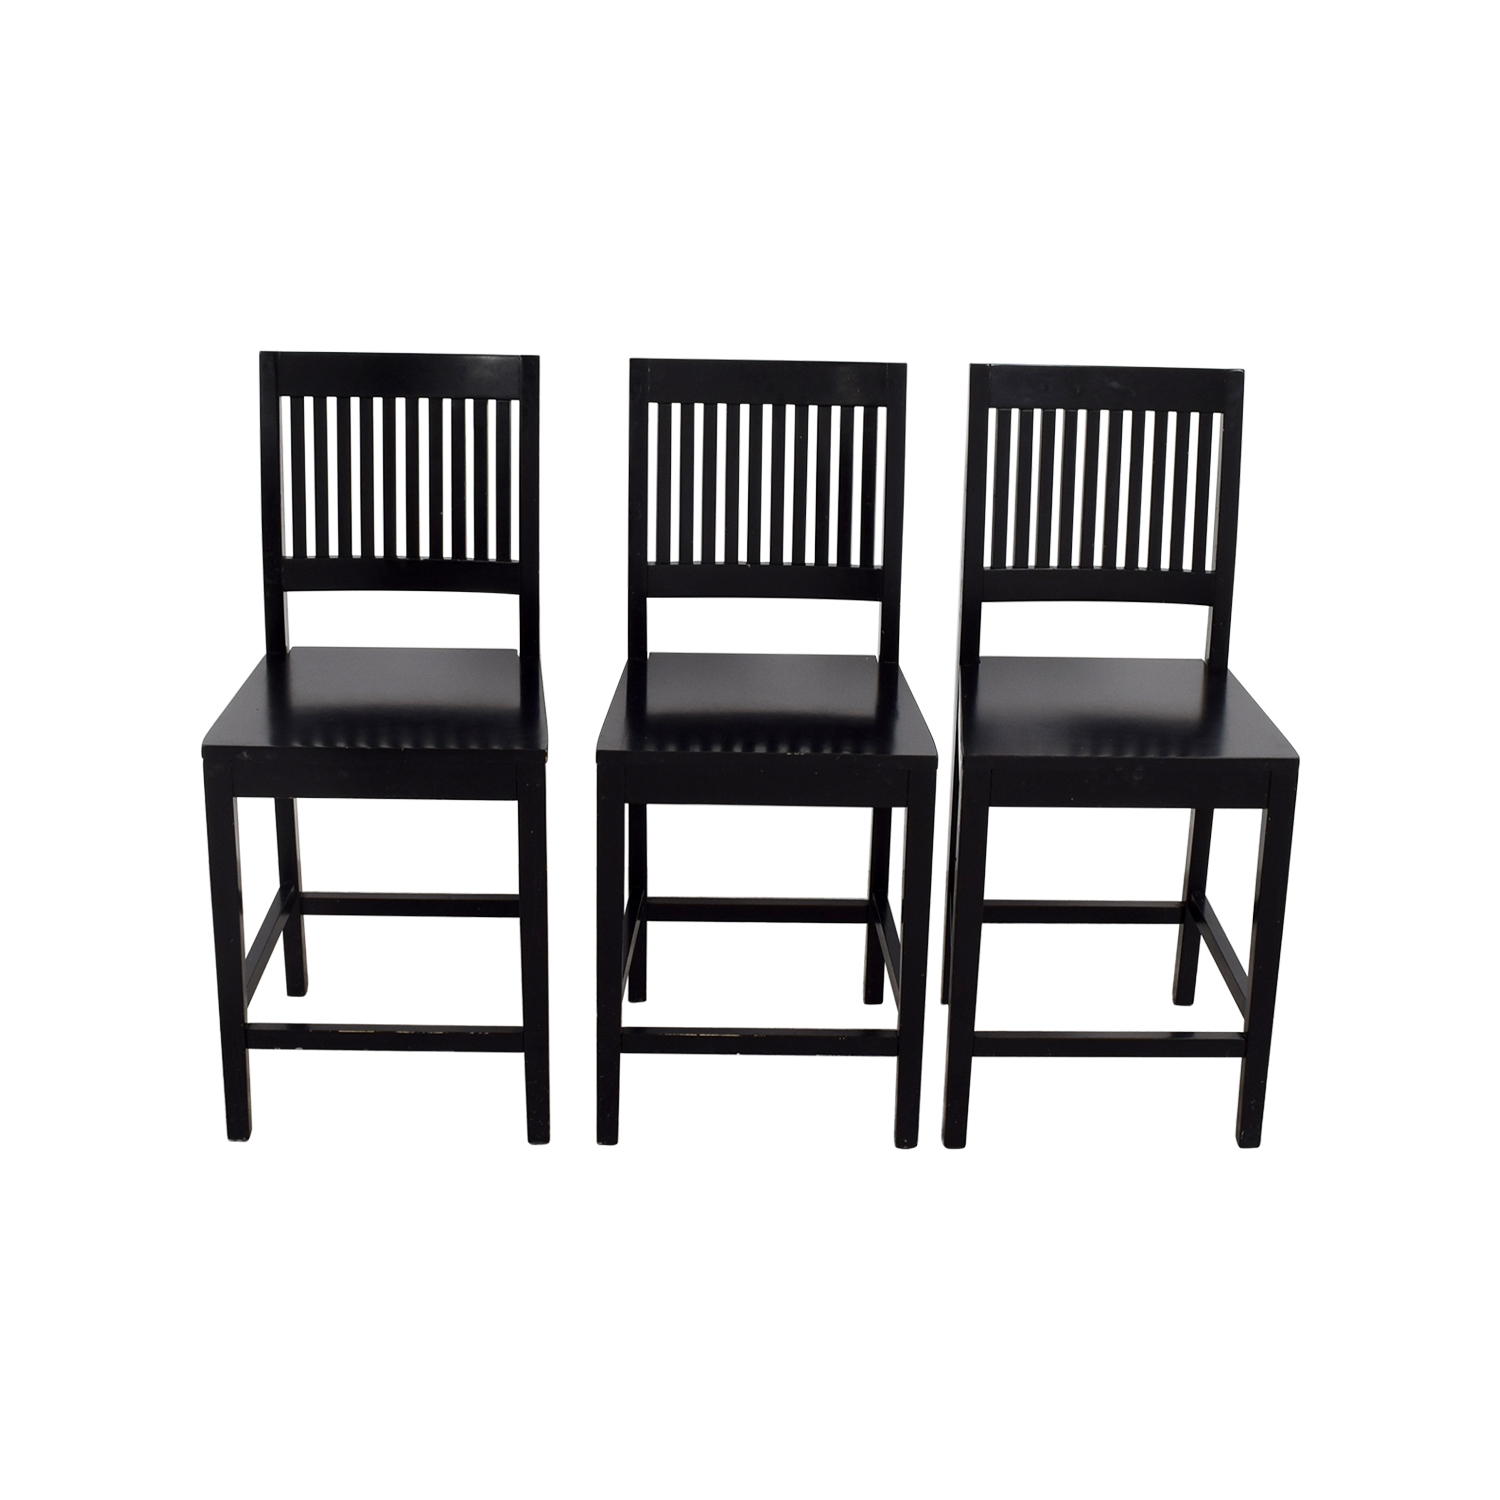 chairs crate and barrel wooden z high chair 89 off counter height